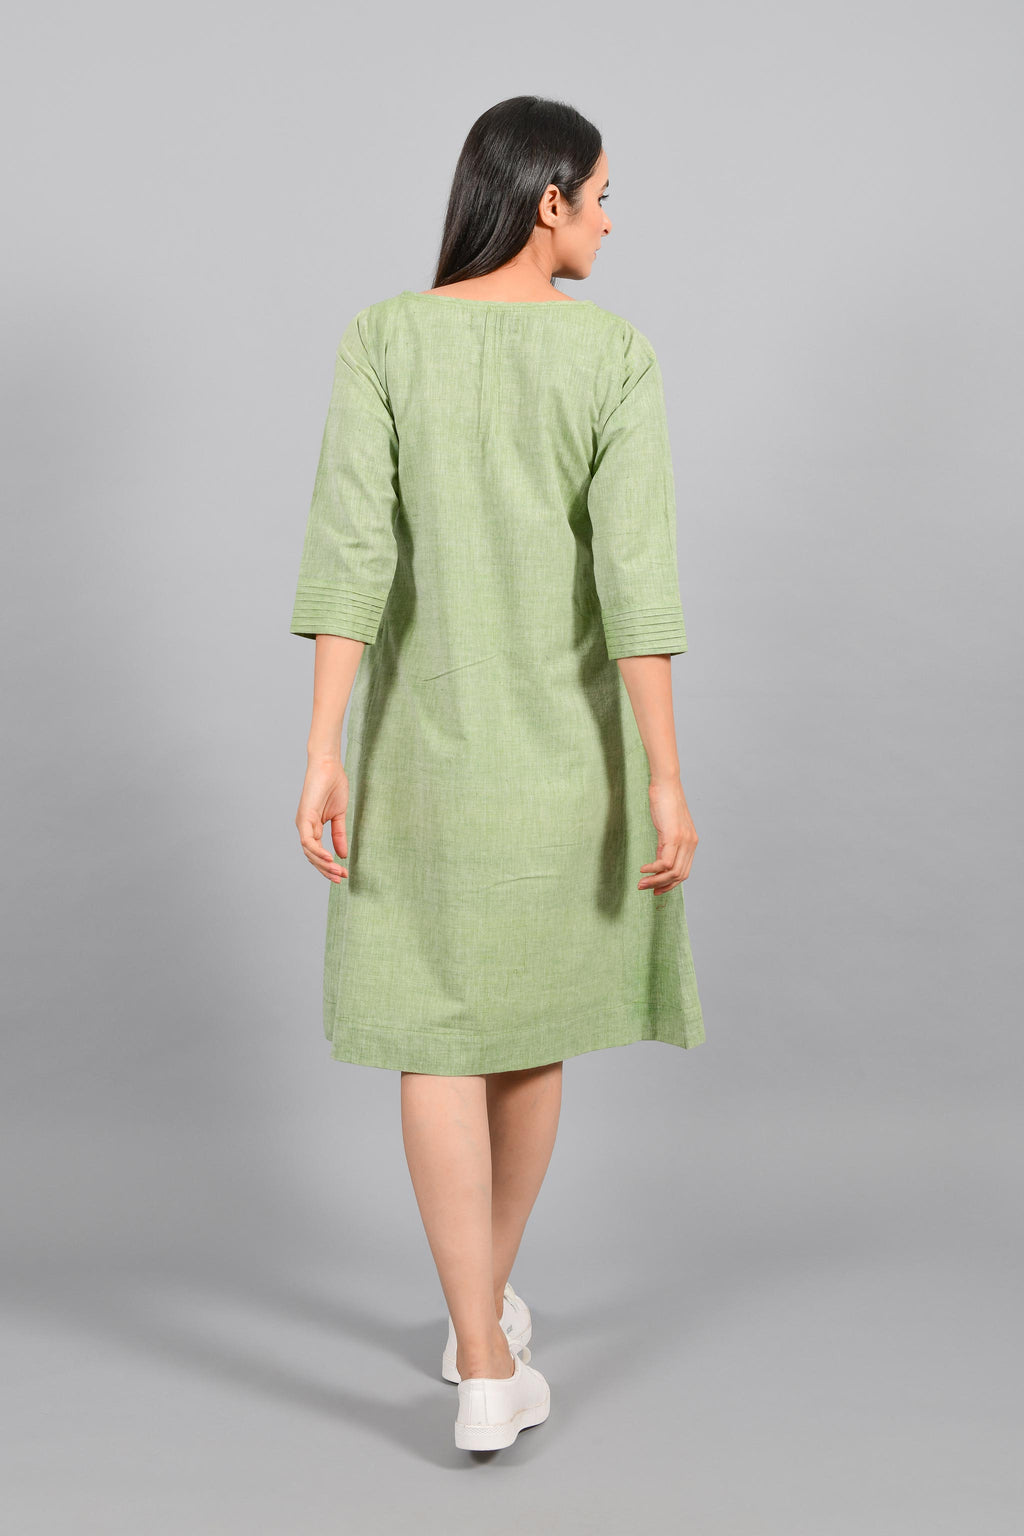 Back pose of an Indian female womenswear fashion model in a olive green chambray handspun and handwoven khadi cotton dress-kurta with pintucks on front by Cotton Rack.